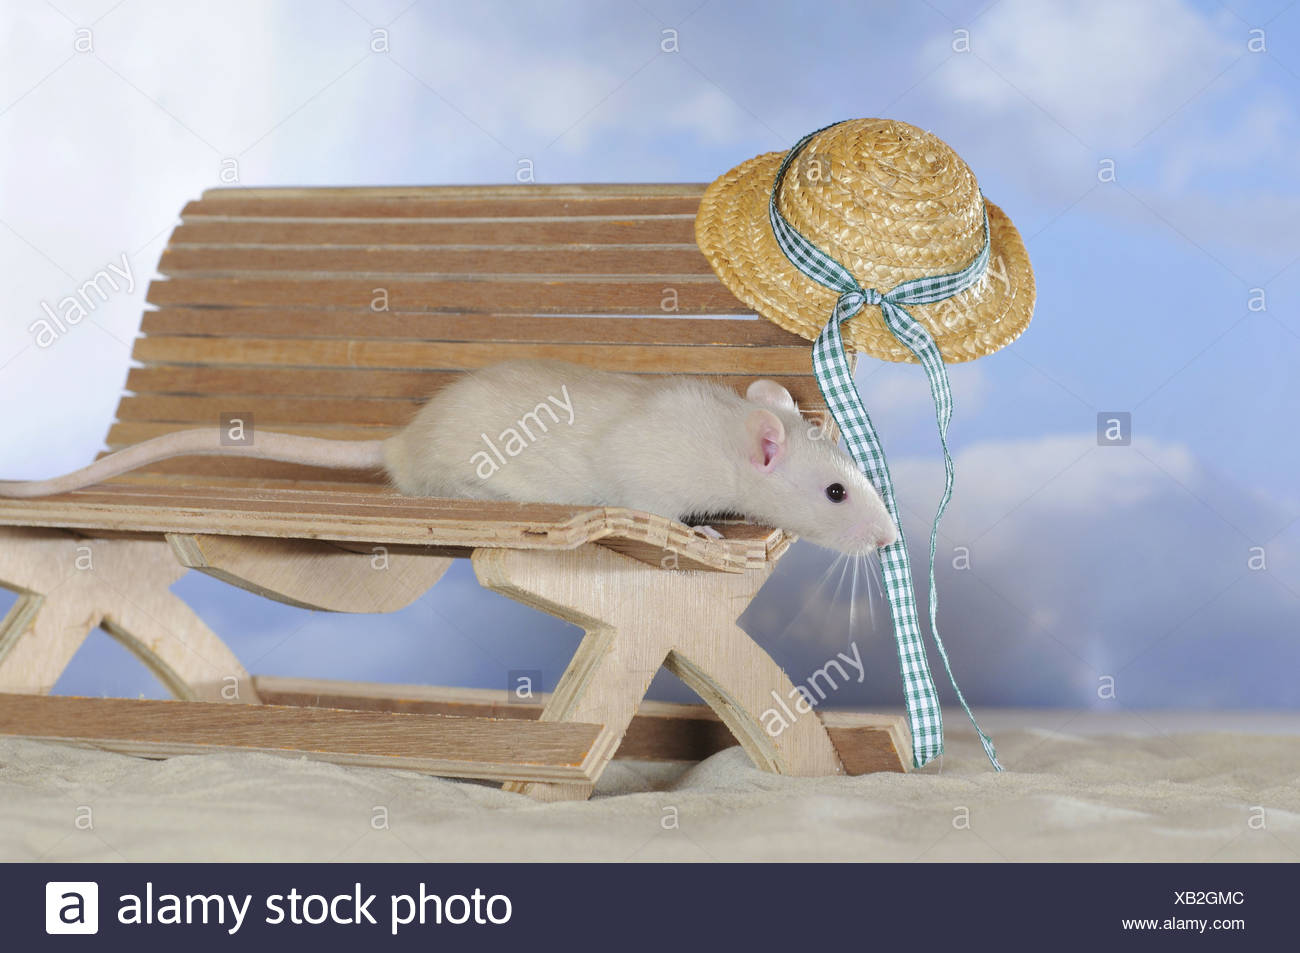 Phenomenal Fancy Rat Cream Coloured On A Small Wooden Bench With A Beatyapartments Chair Design Images Beatyapartmentscom